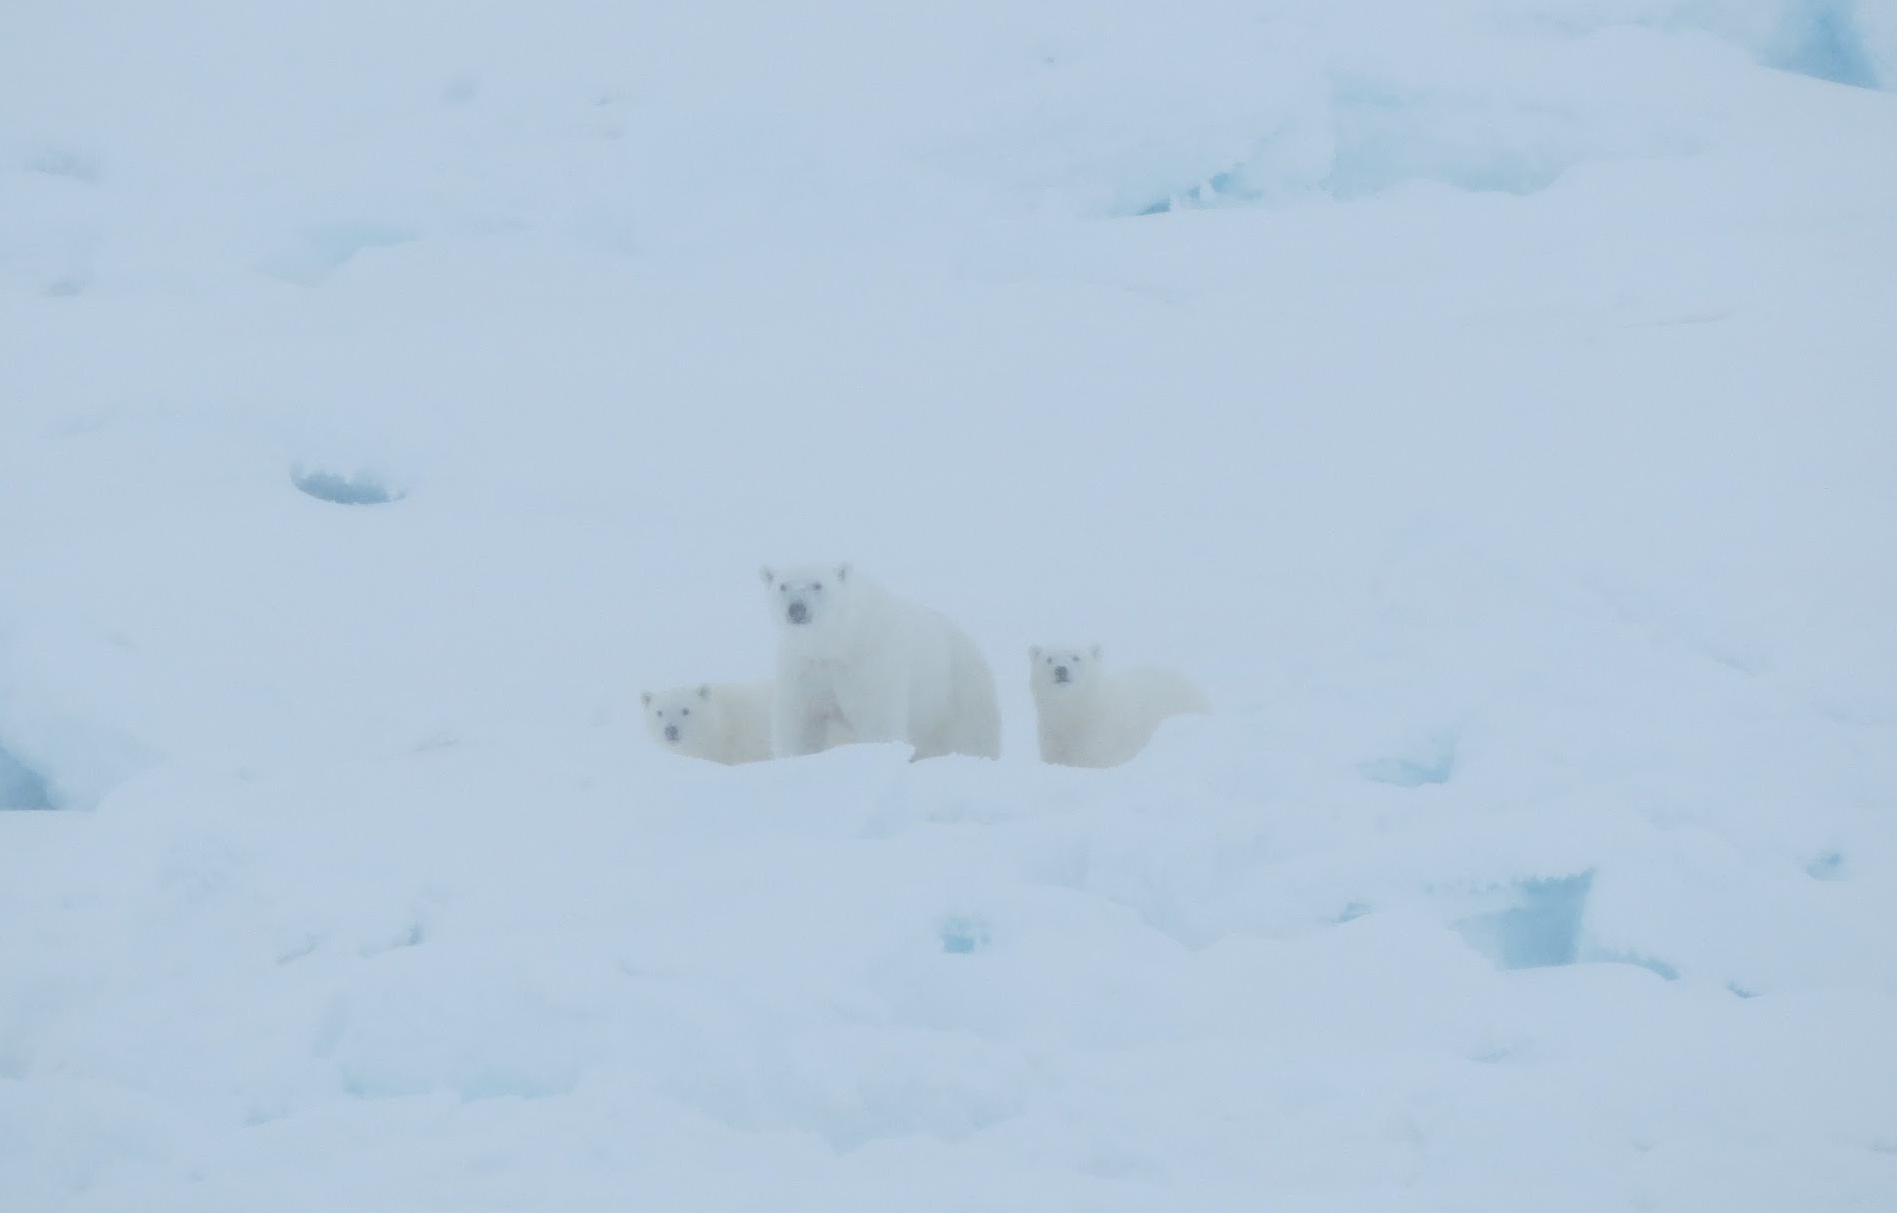 Polar bear with two young cubs in the snow